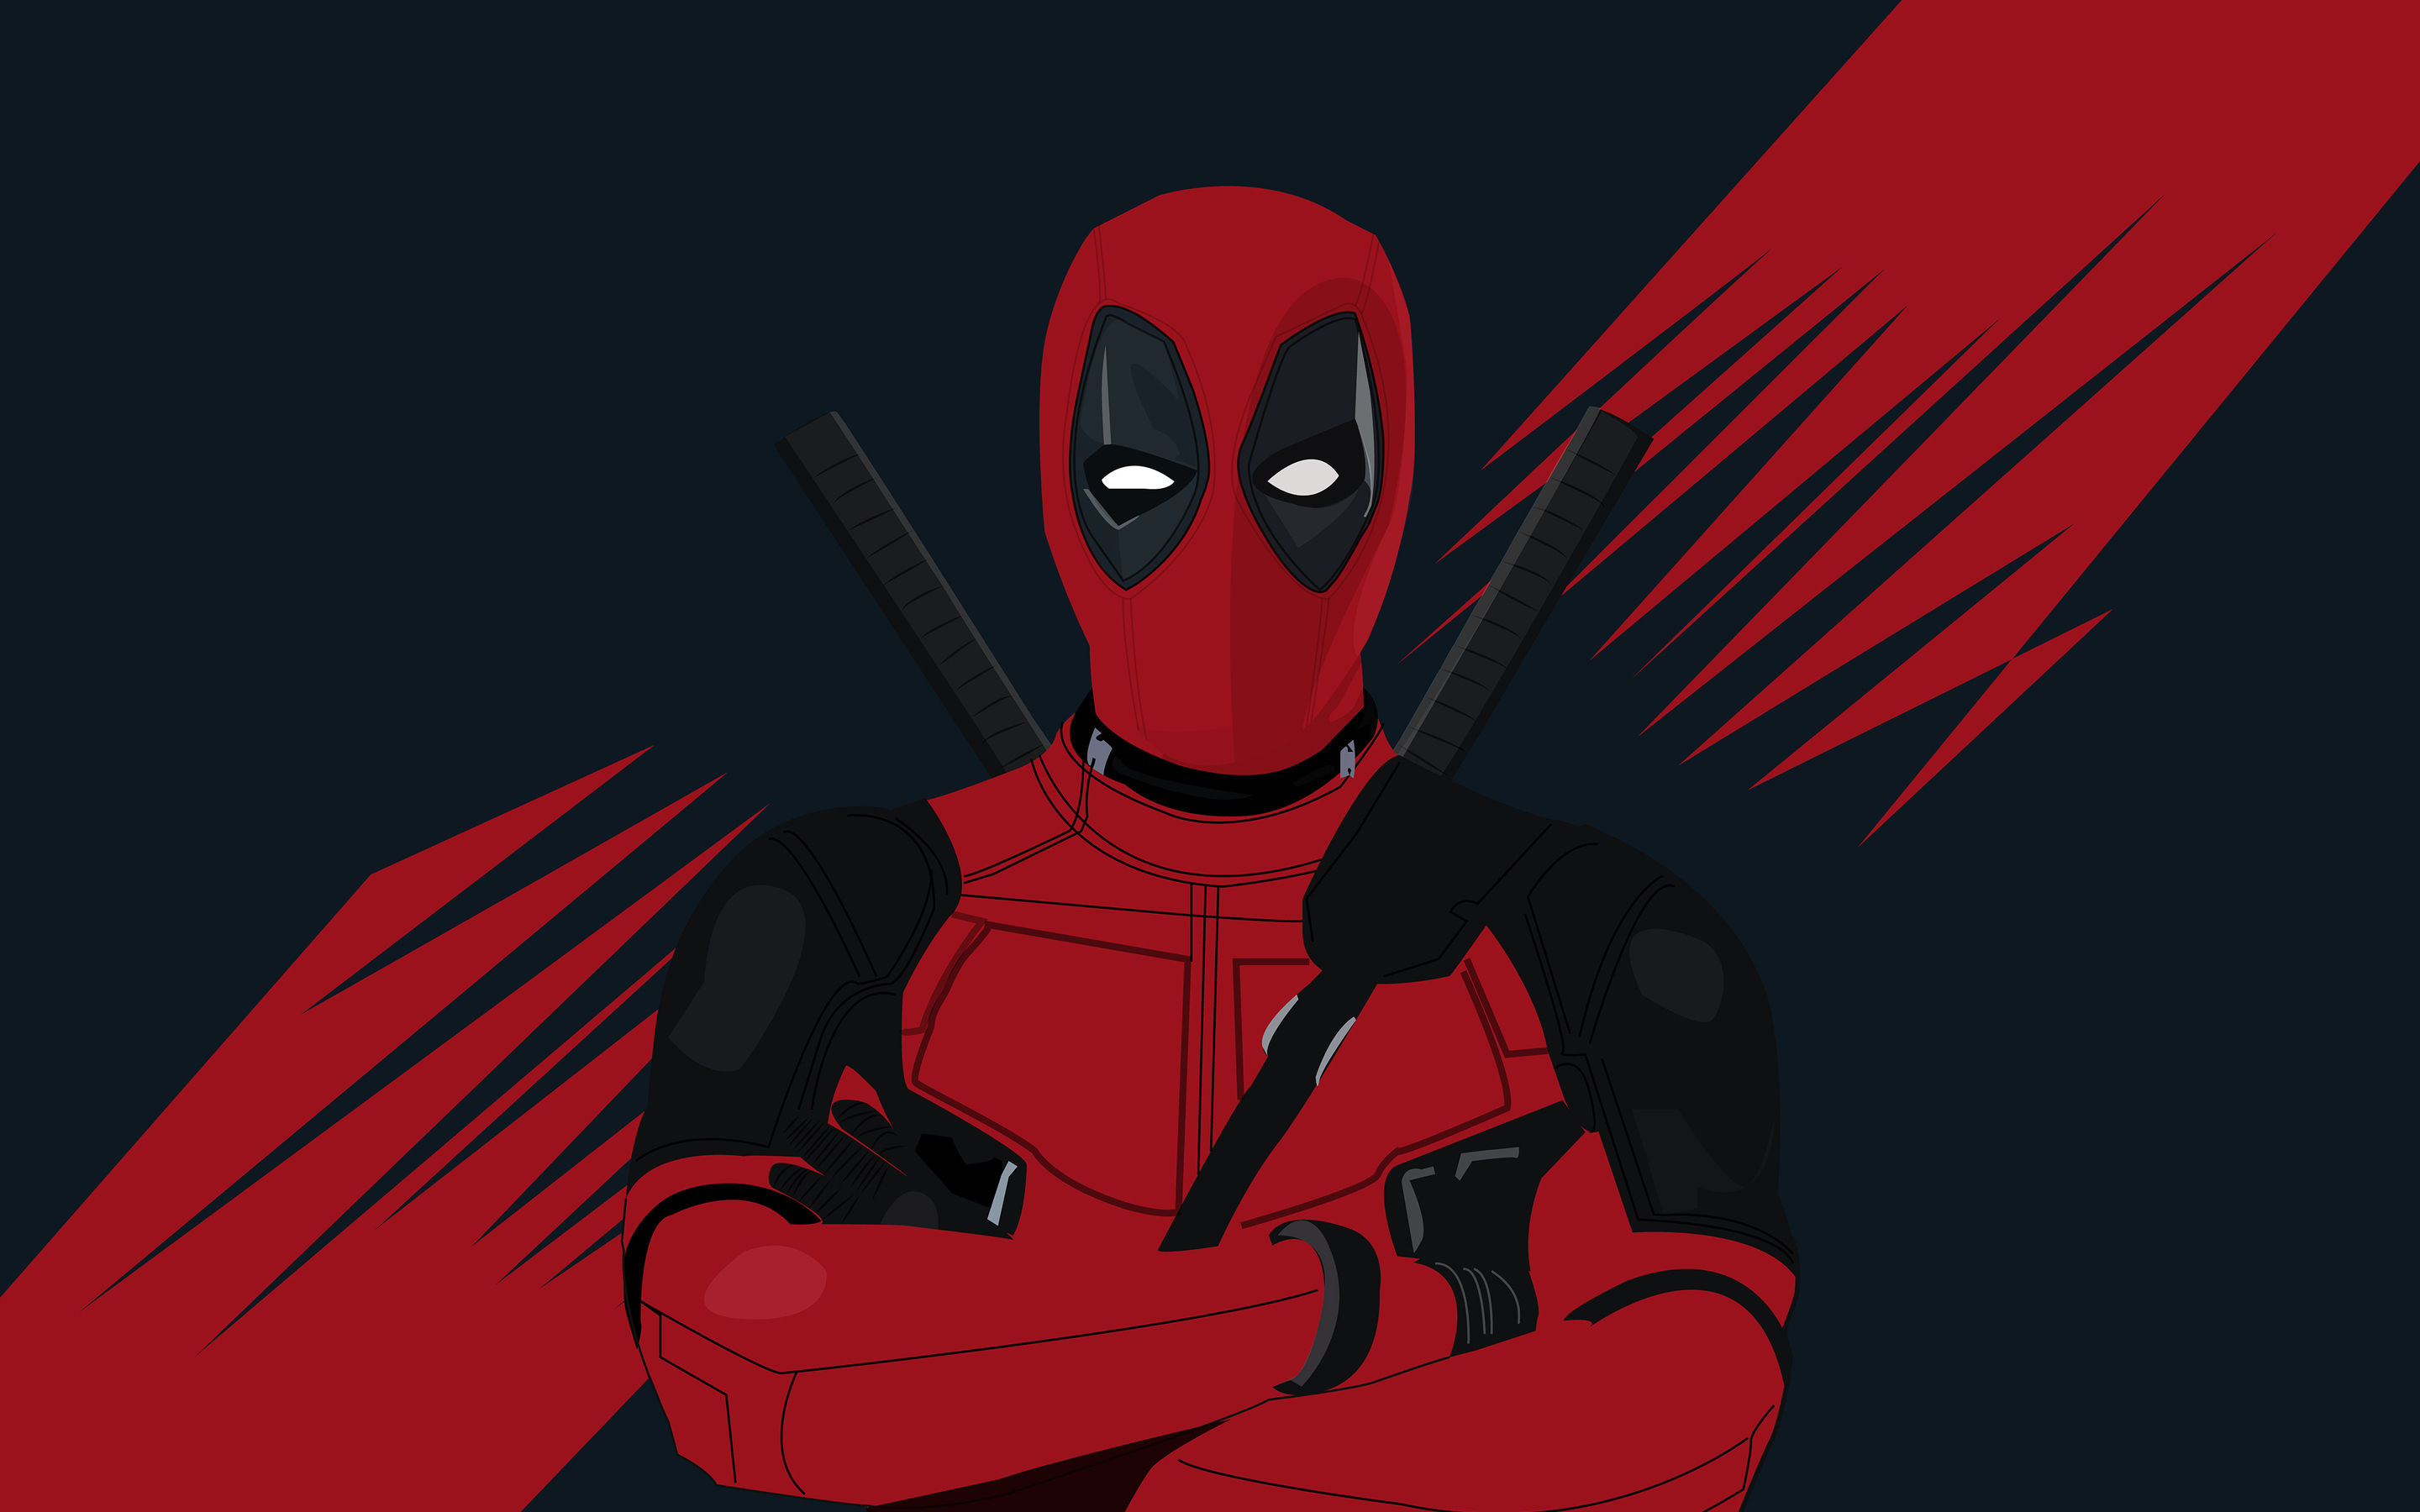 2880x1800 4k Deadpool Minimal 2019 Macbook Pro Retina HD ...